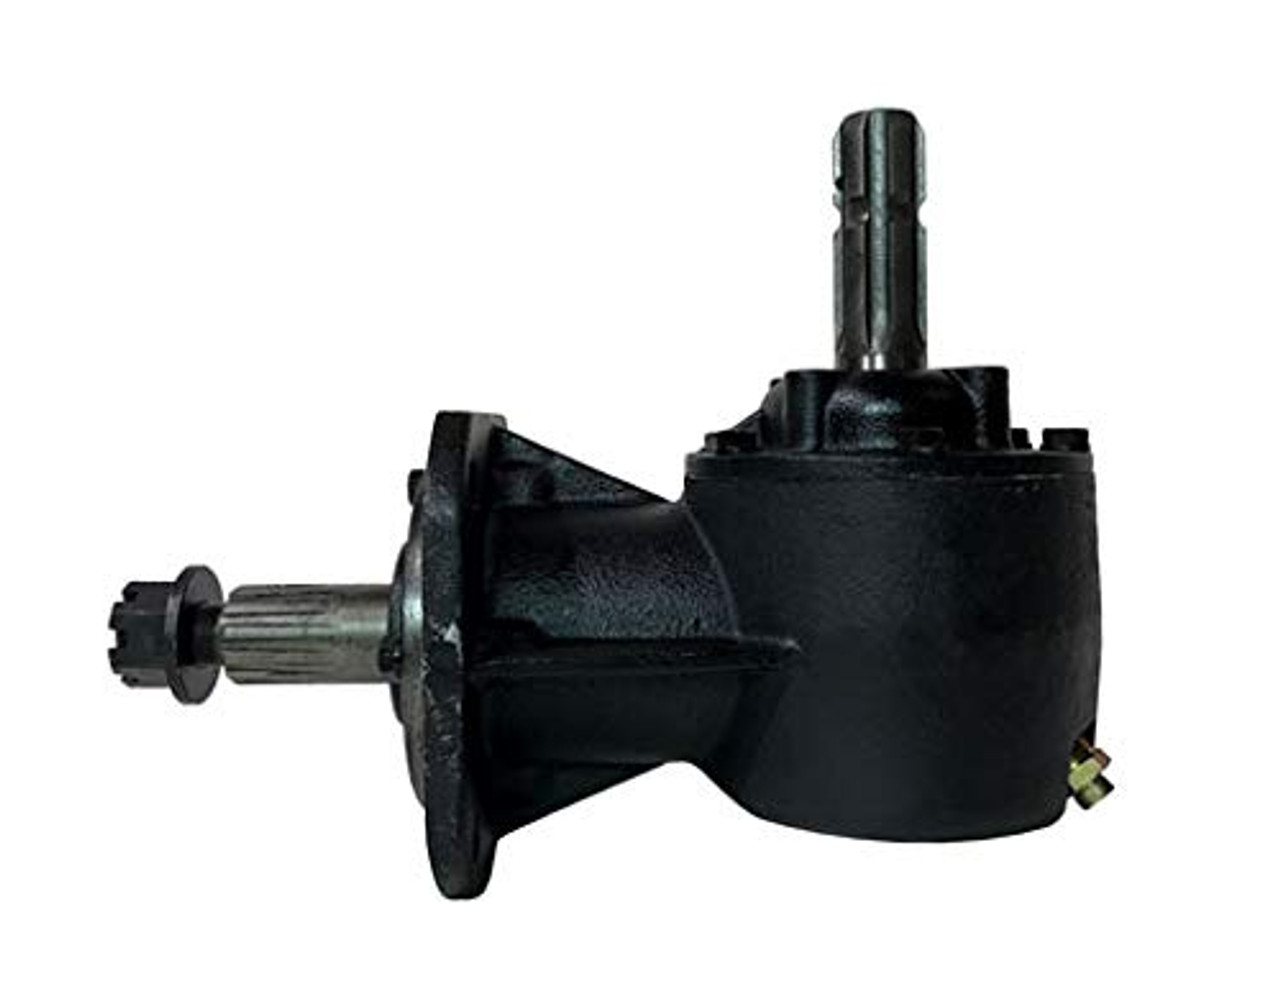 GEARBOX 401-073-01